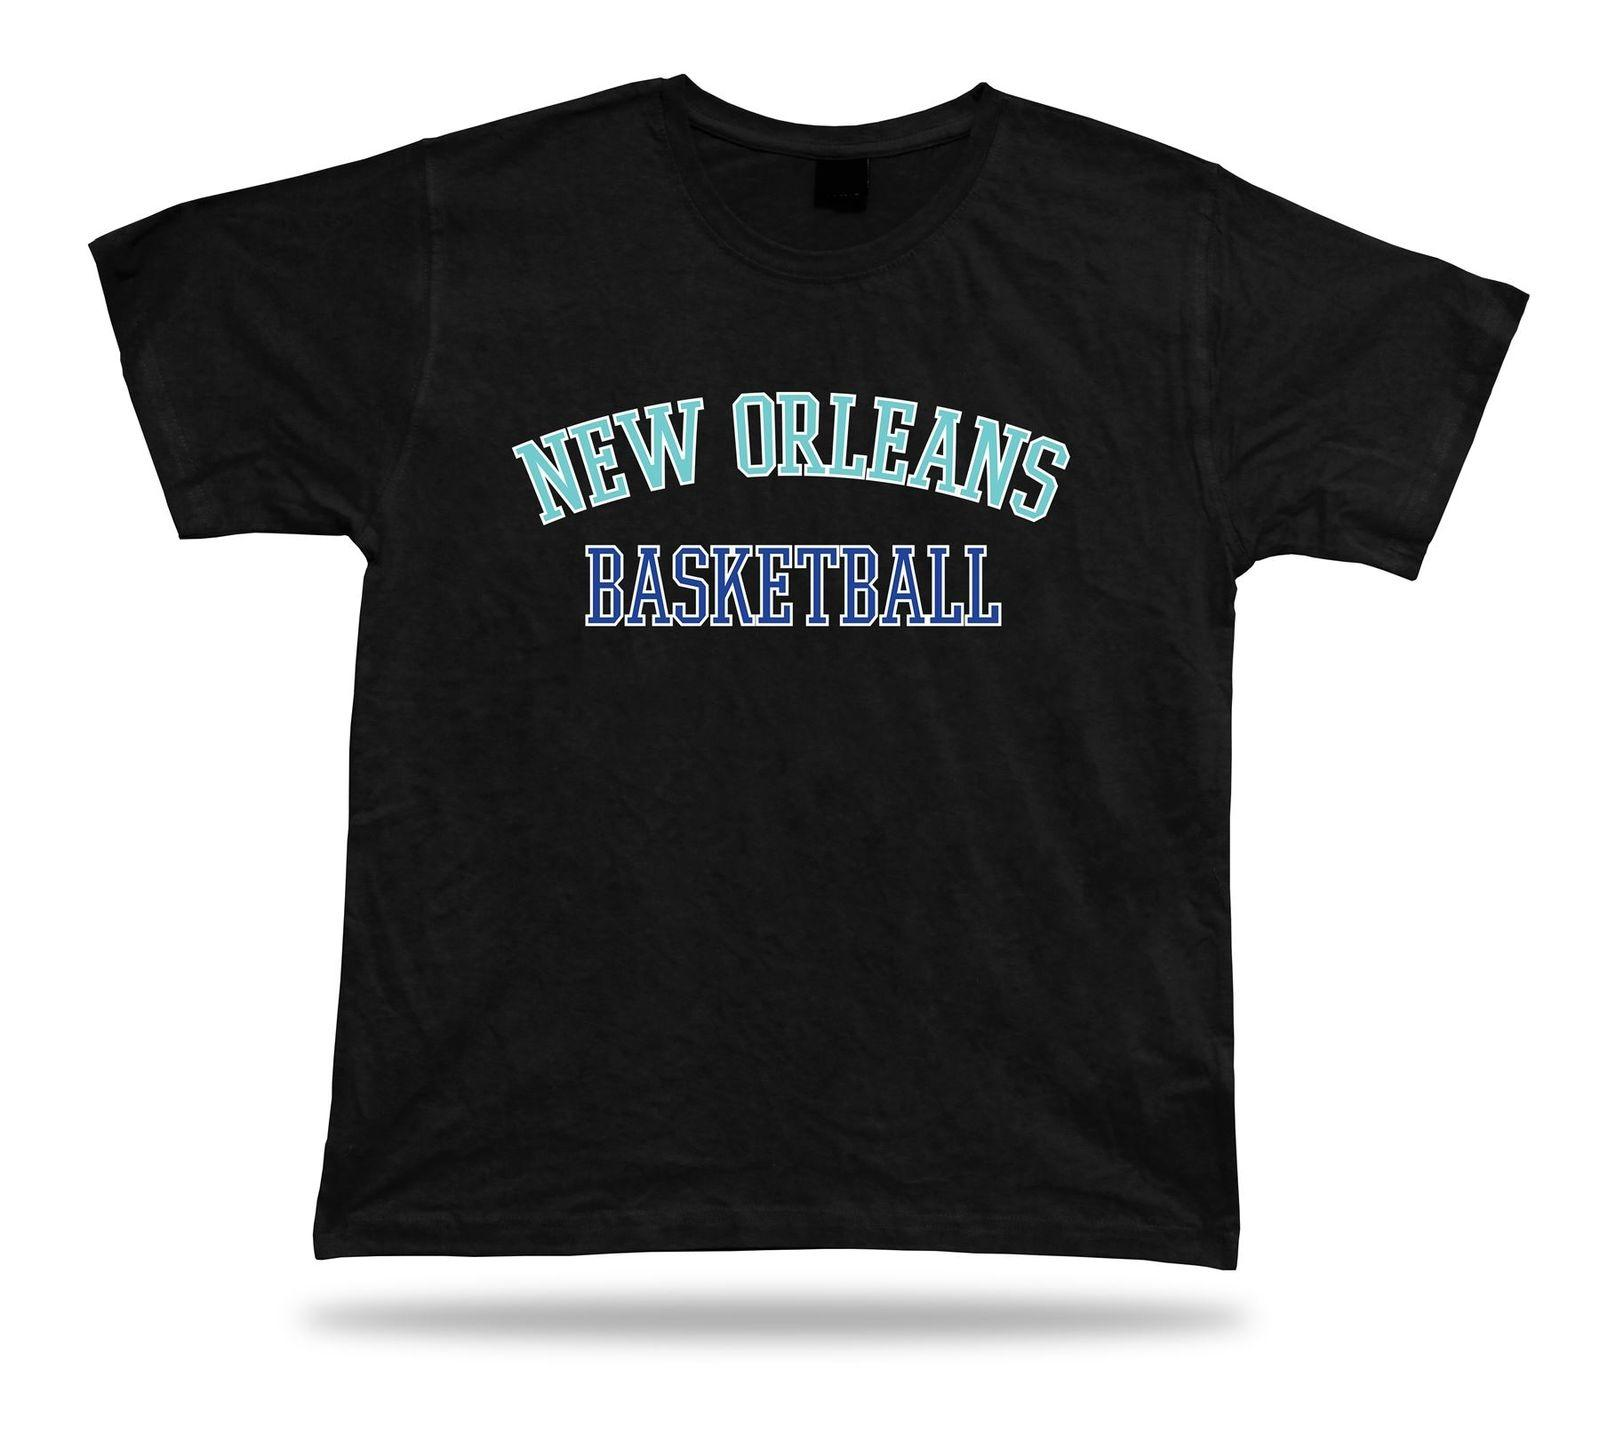 11e237638 New Orleans USA BASKETBALL T Shirt Tee Warm Up Style Court Side Design  Funny Tee Shirts Hipster O Neck Cool Tops Retro T Shirts Tshirt Designs  From ...